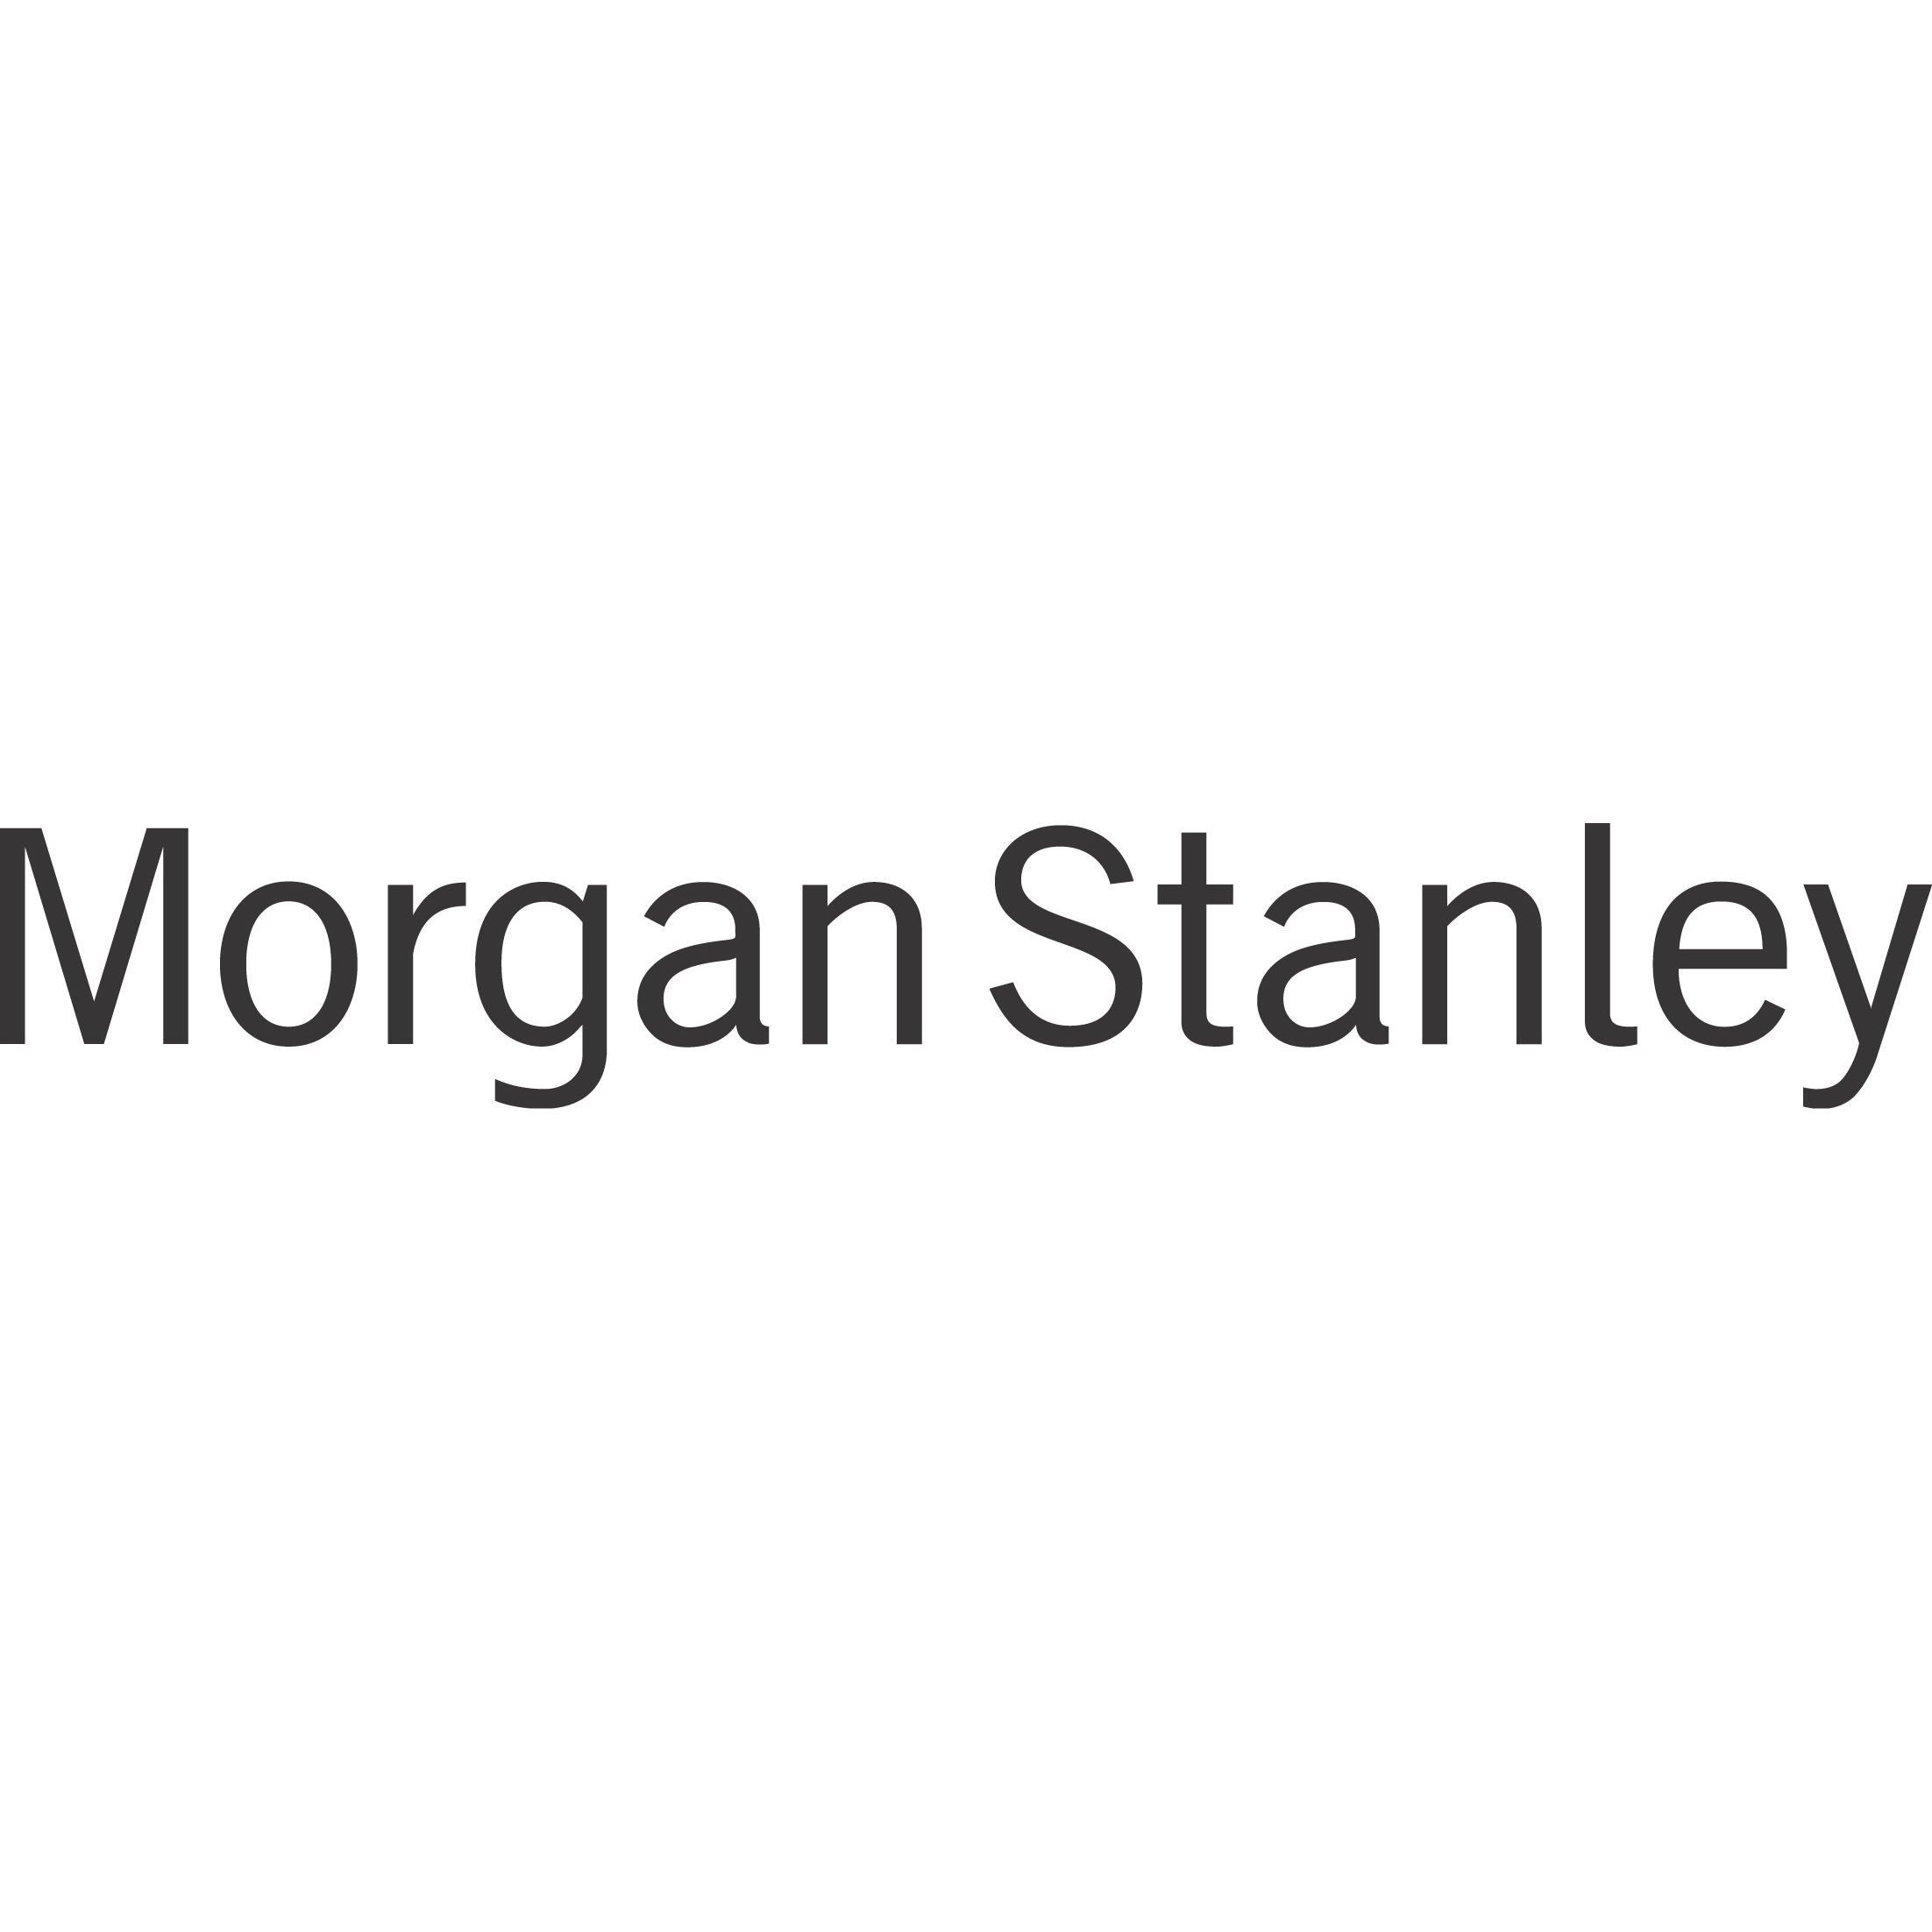 Lyn Partridge Breda - Morgan Stanley | Financial Advisor in Sarasota,Florida